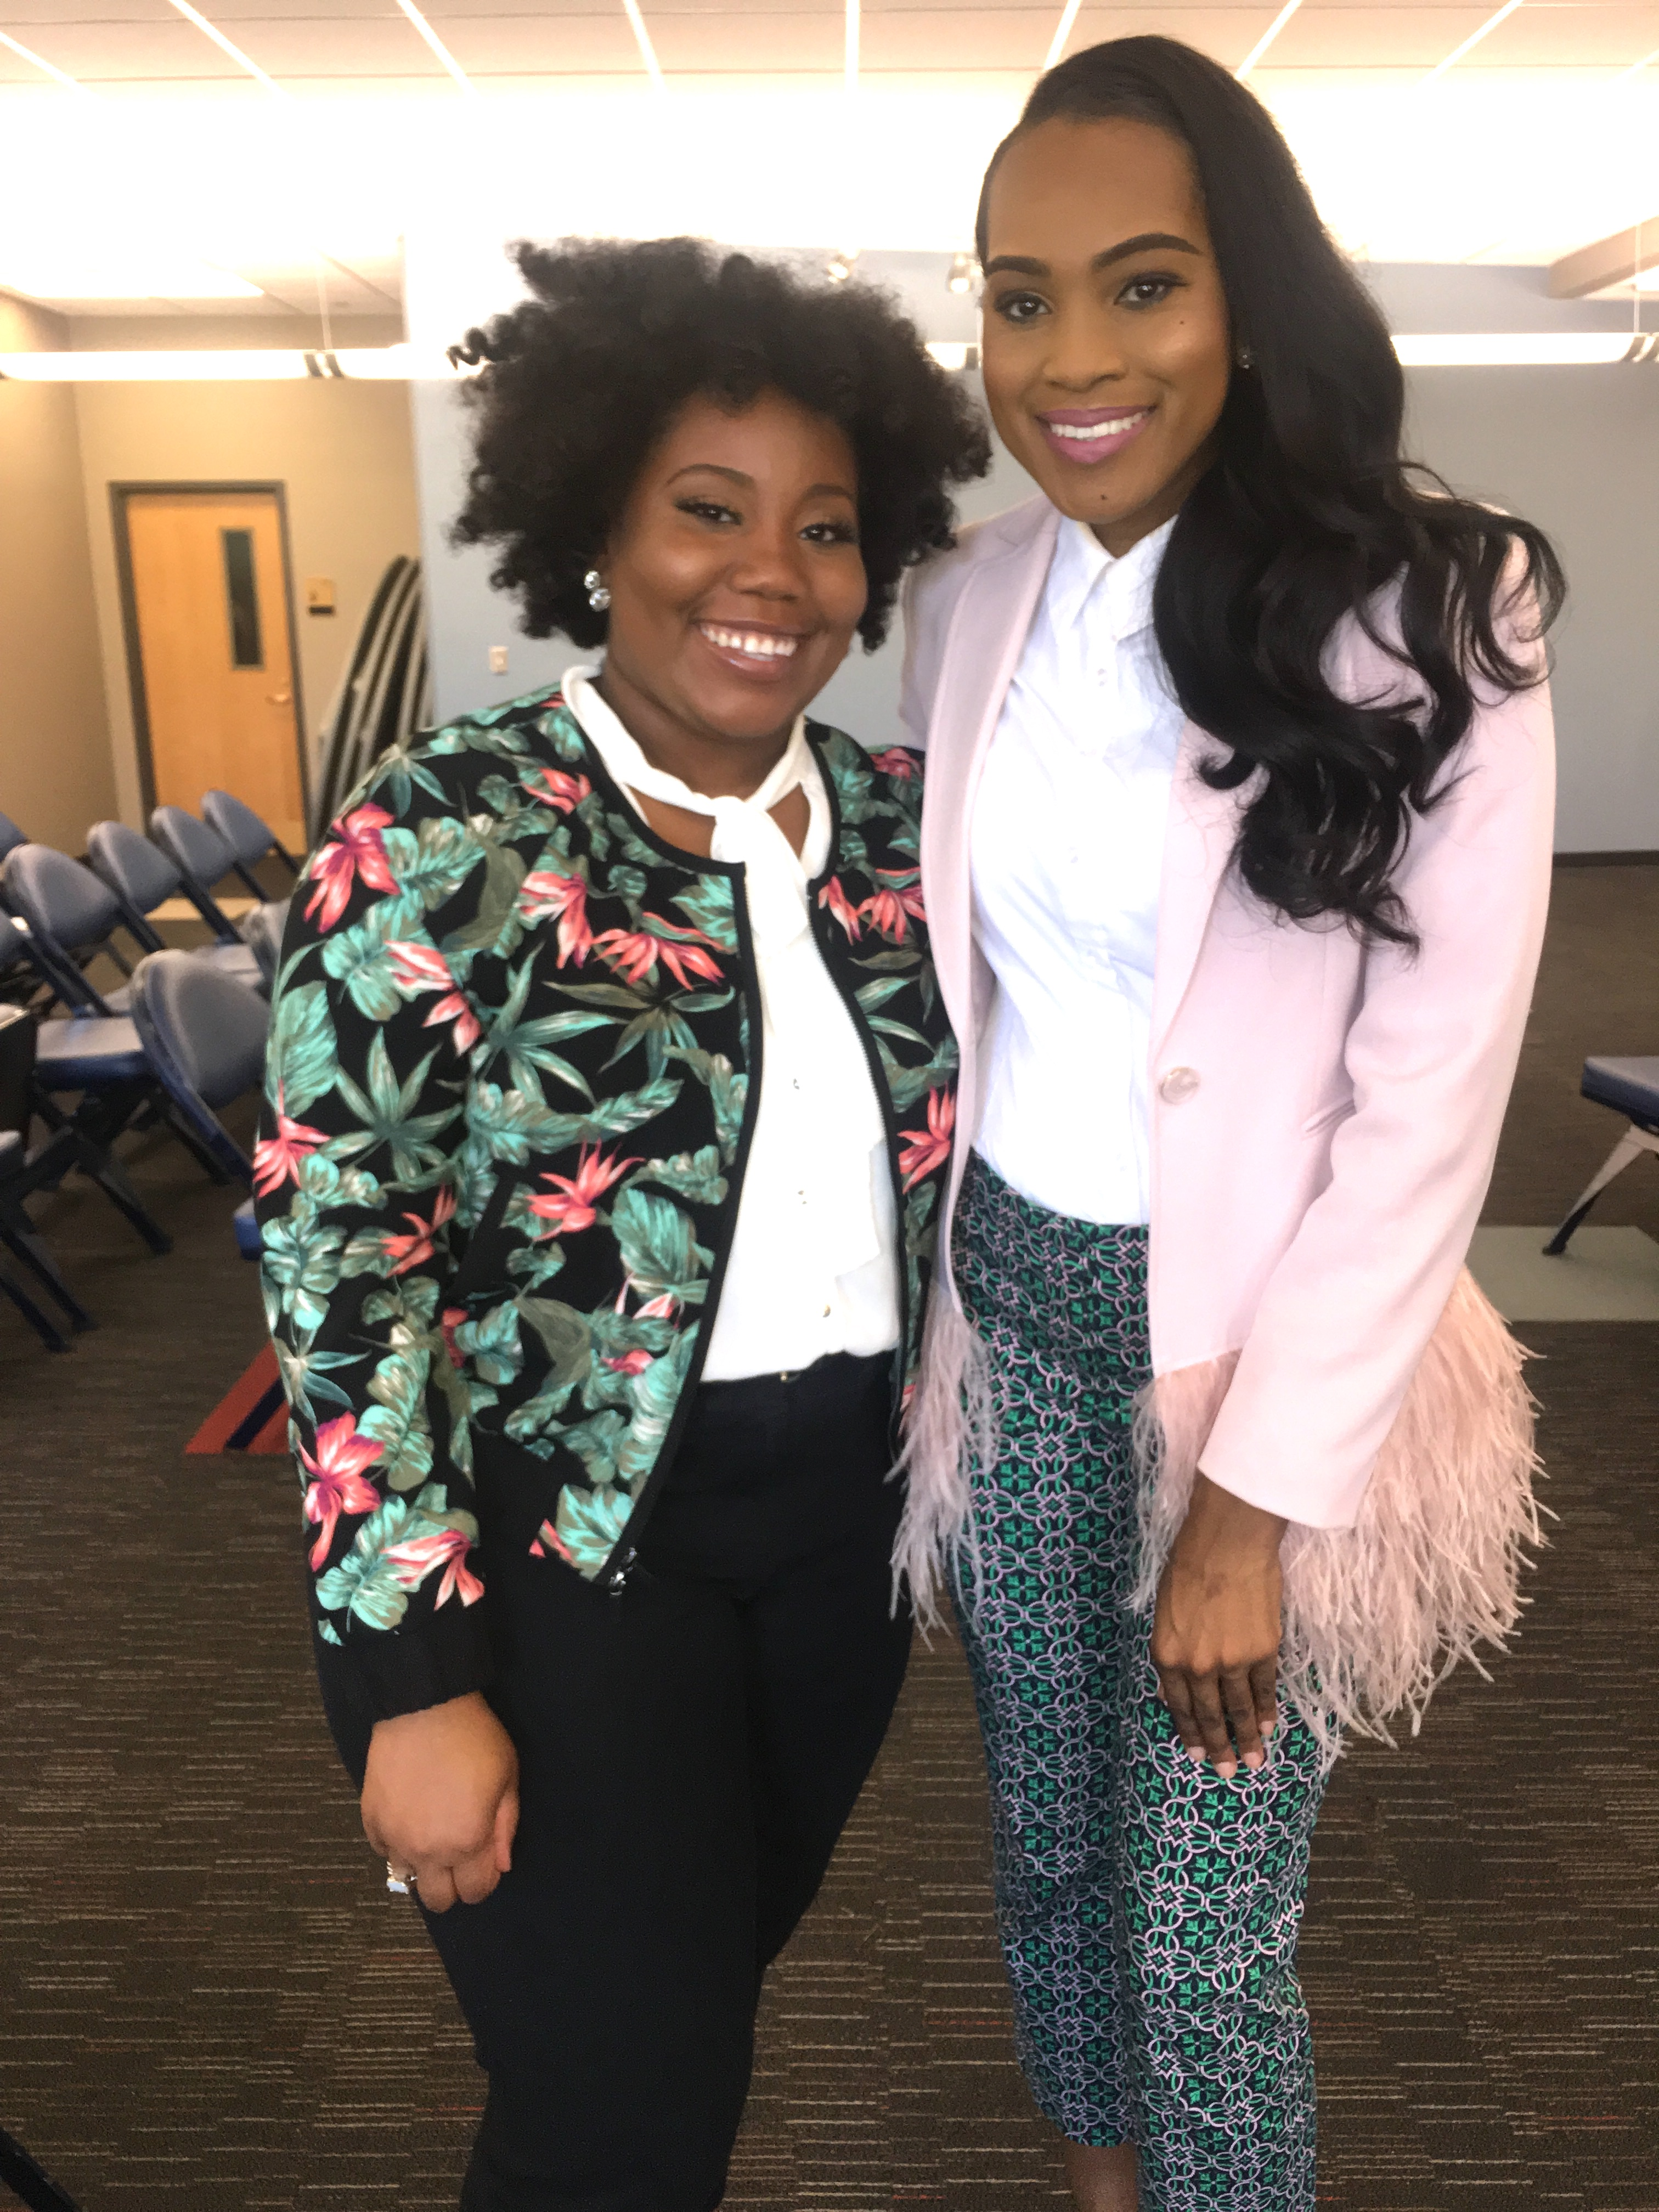 Style-Files-Thrifted-Printed-Jcrew-ankle-pants- white-thrifted-blouse-Pink-Gianni-Bini-Lizzy-Notch-Lapel-Collar-Feather-Trim-Solid-Crepe-Blazer-feather-hem-blazer-Birmingham-Association-of-black-journalist-college-panel-event-oohlalablog-10